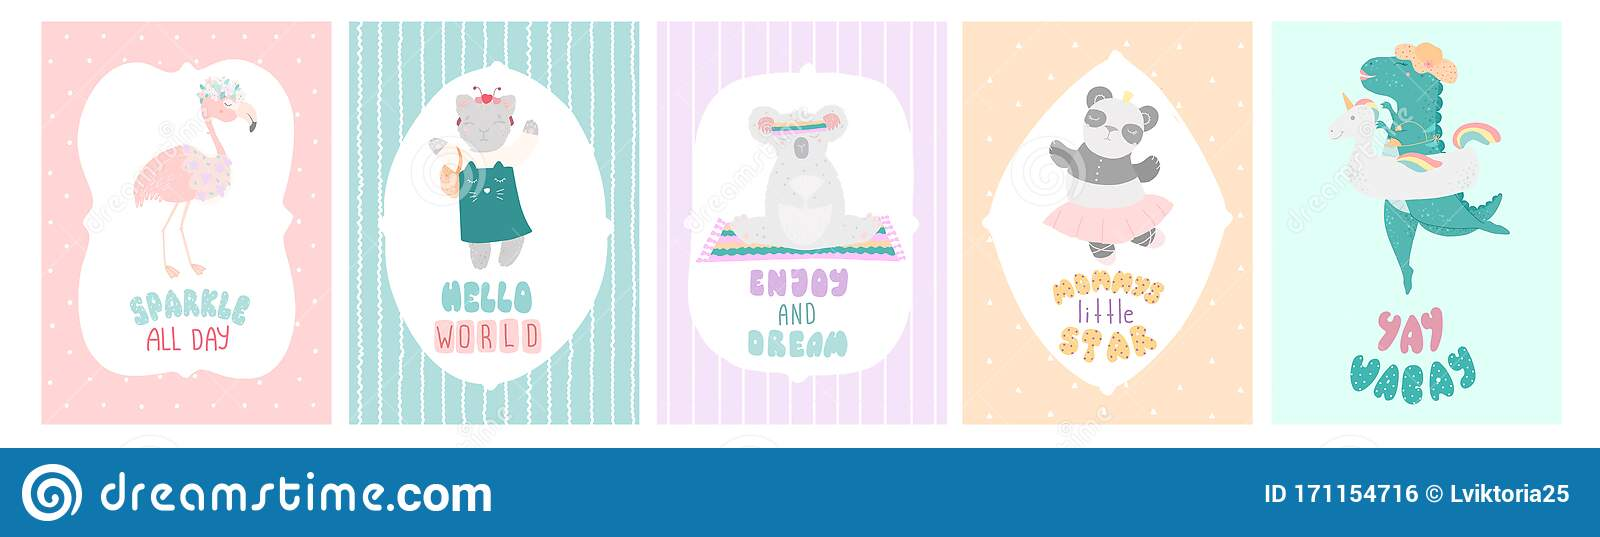 Sensational Birthday Cards With Quotes For Baby Girl And Kids Can Be Used For Personalised Birthday Cards Bromeletsinfo